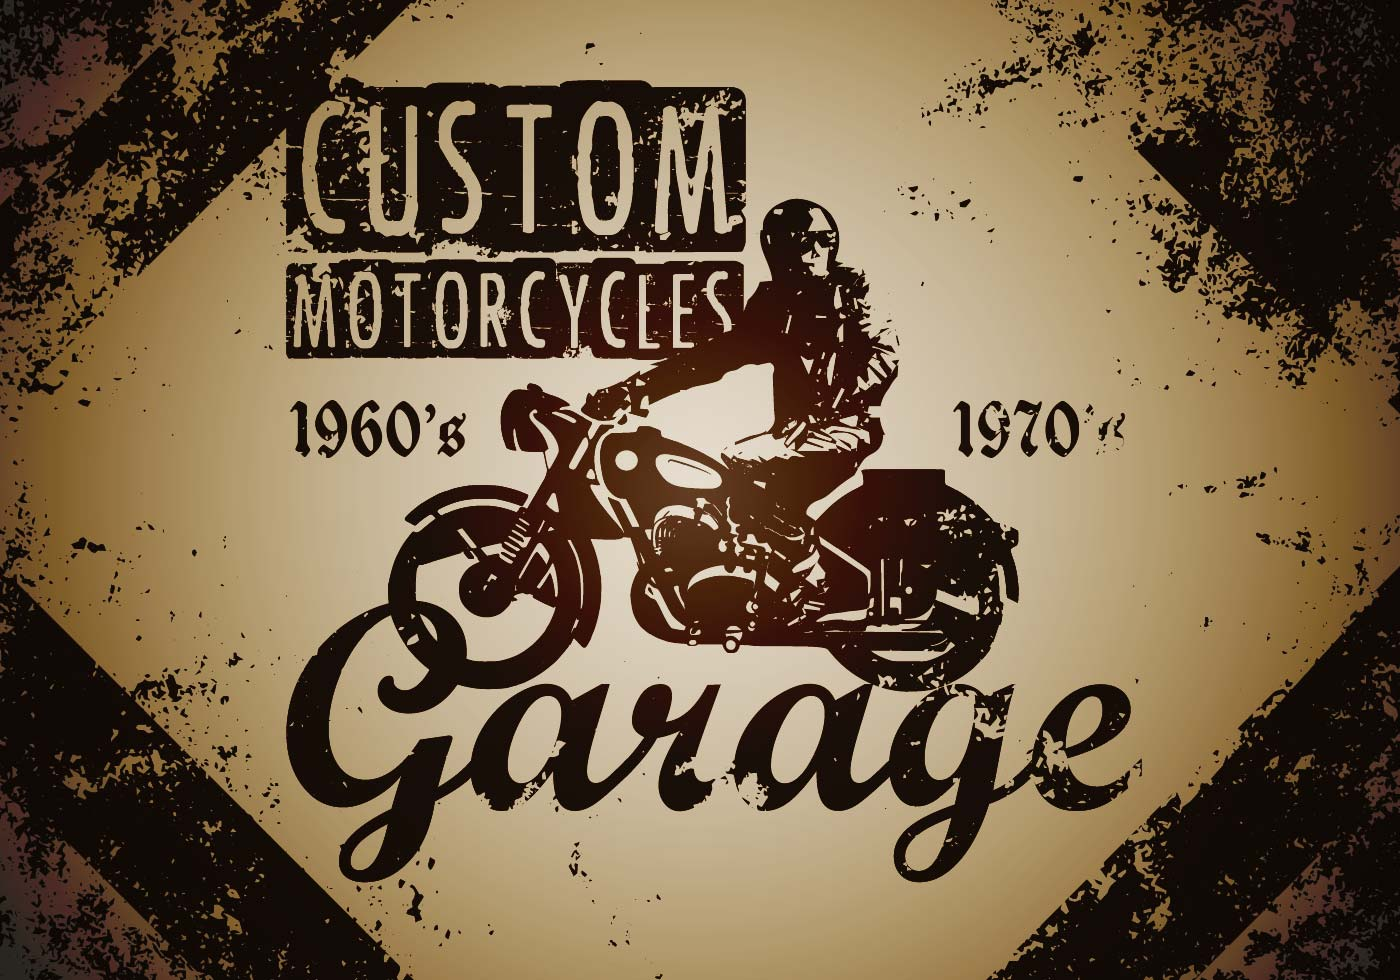 Motorcycle Silhouette Free Vector Art 9808 Free Downloads